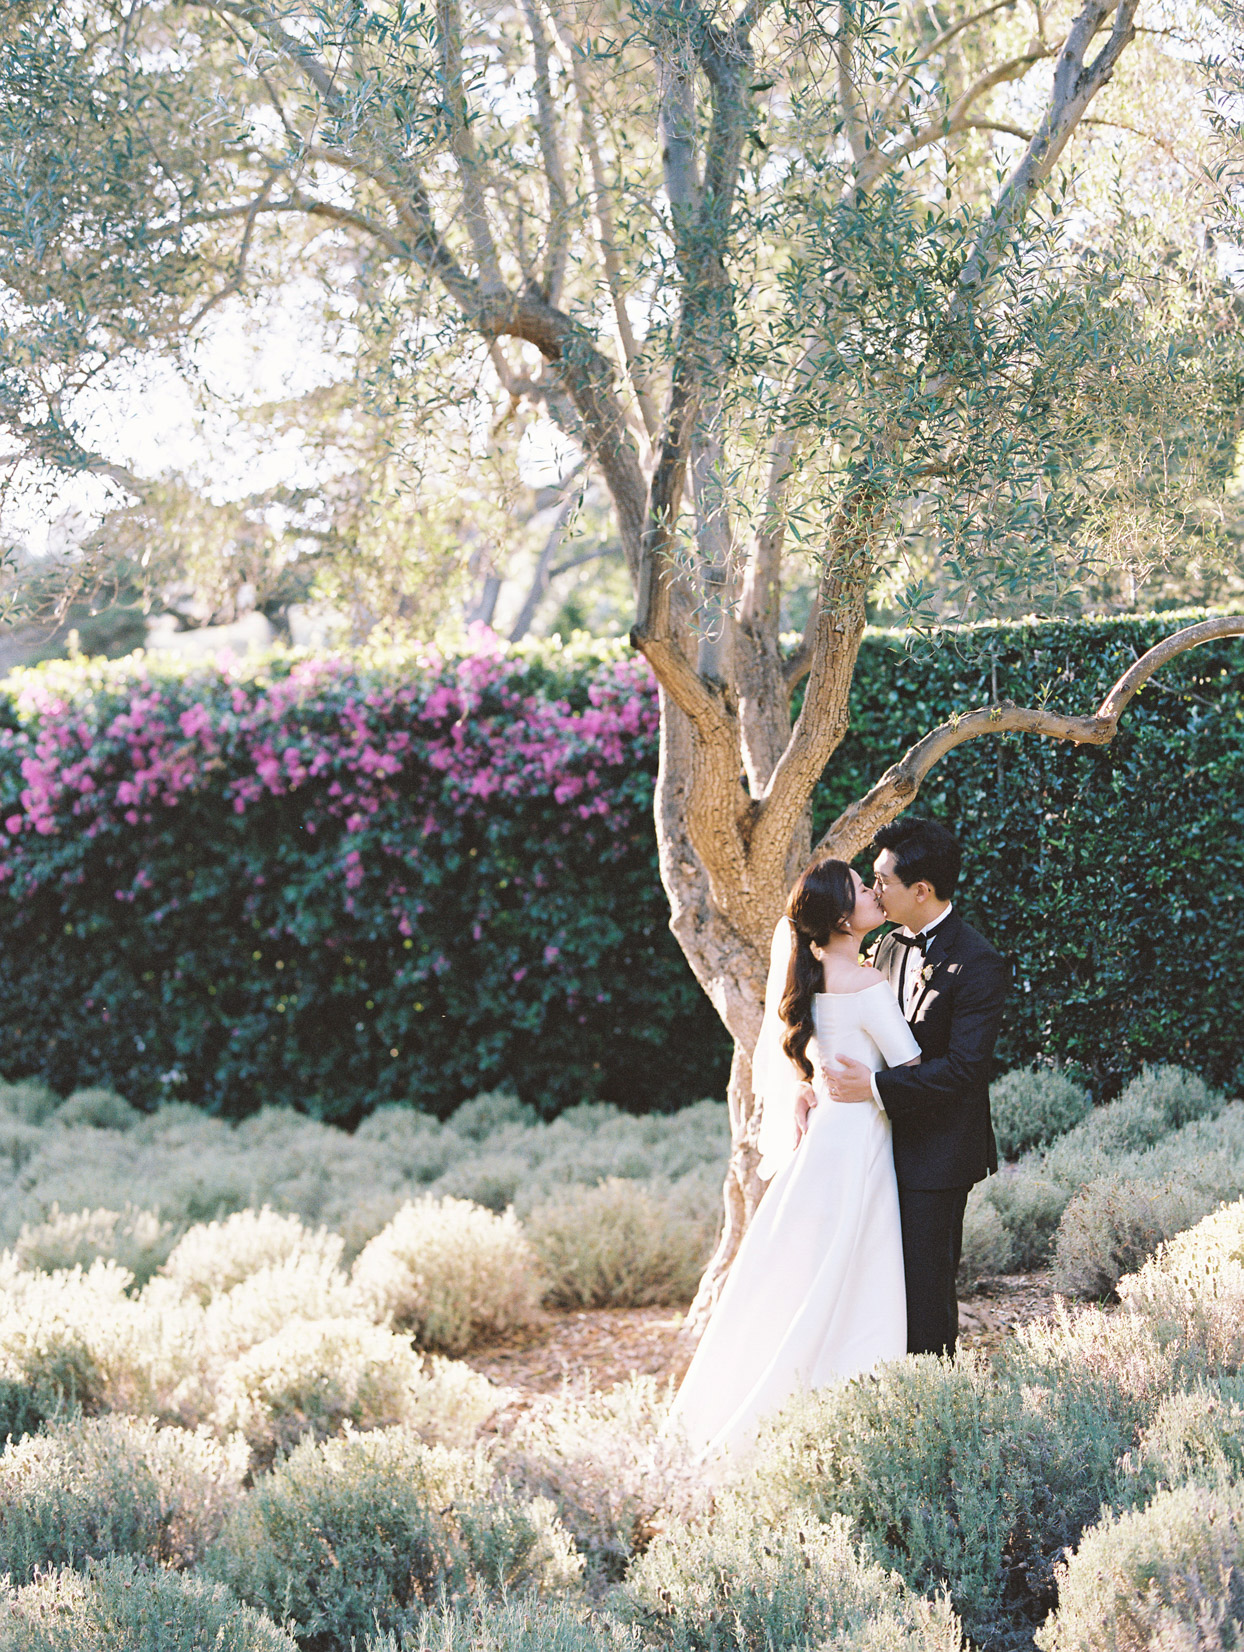 wedding couple kiss for portrait in garden